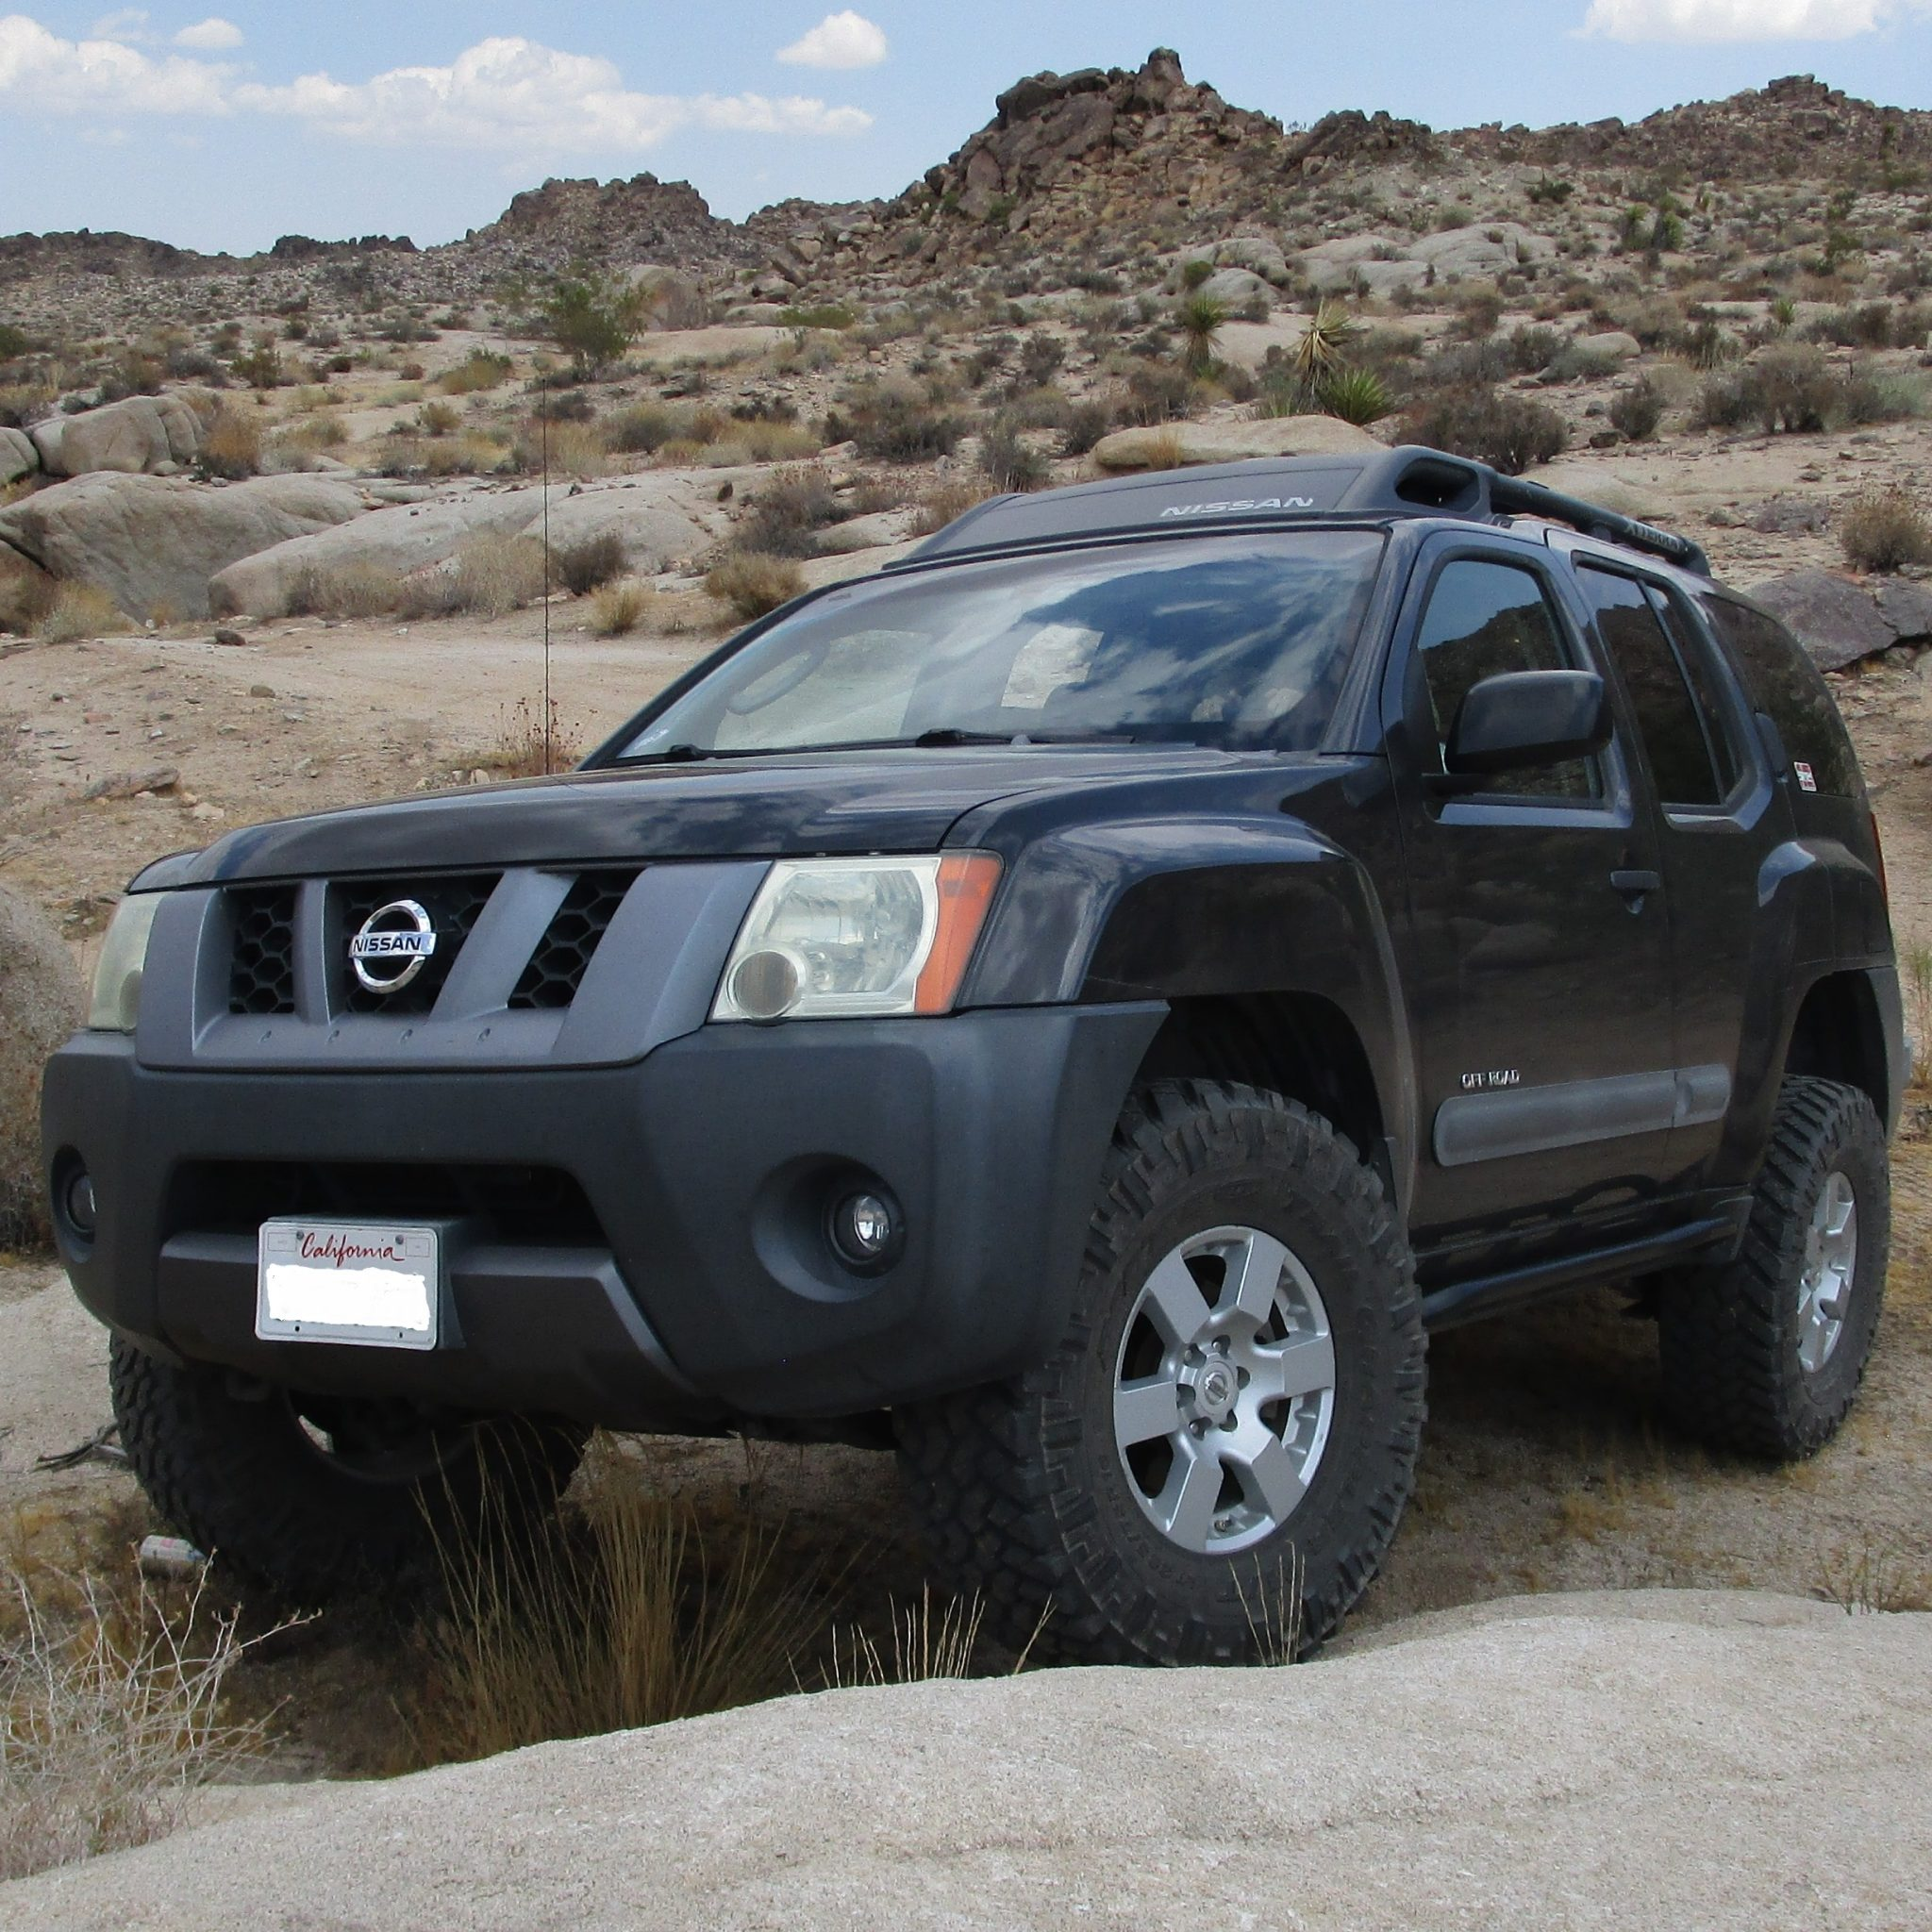 of fast post odder xterra ain but a nevertheless bit on terrain t my nissan p goes an any